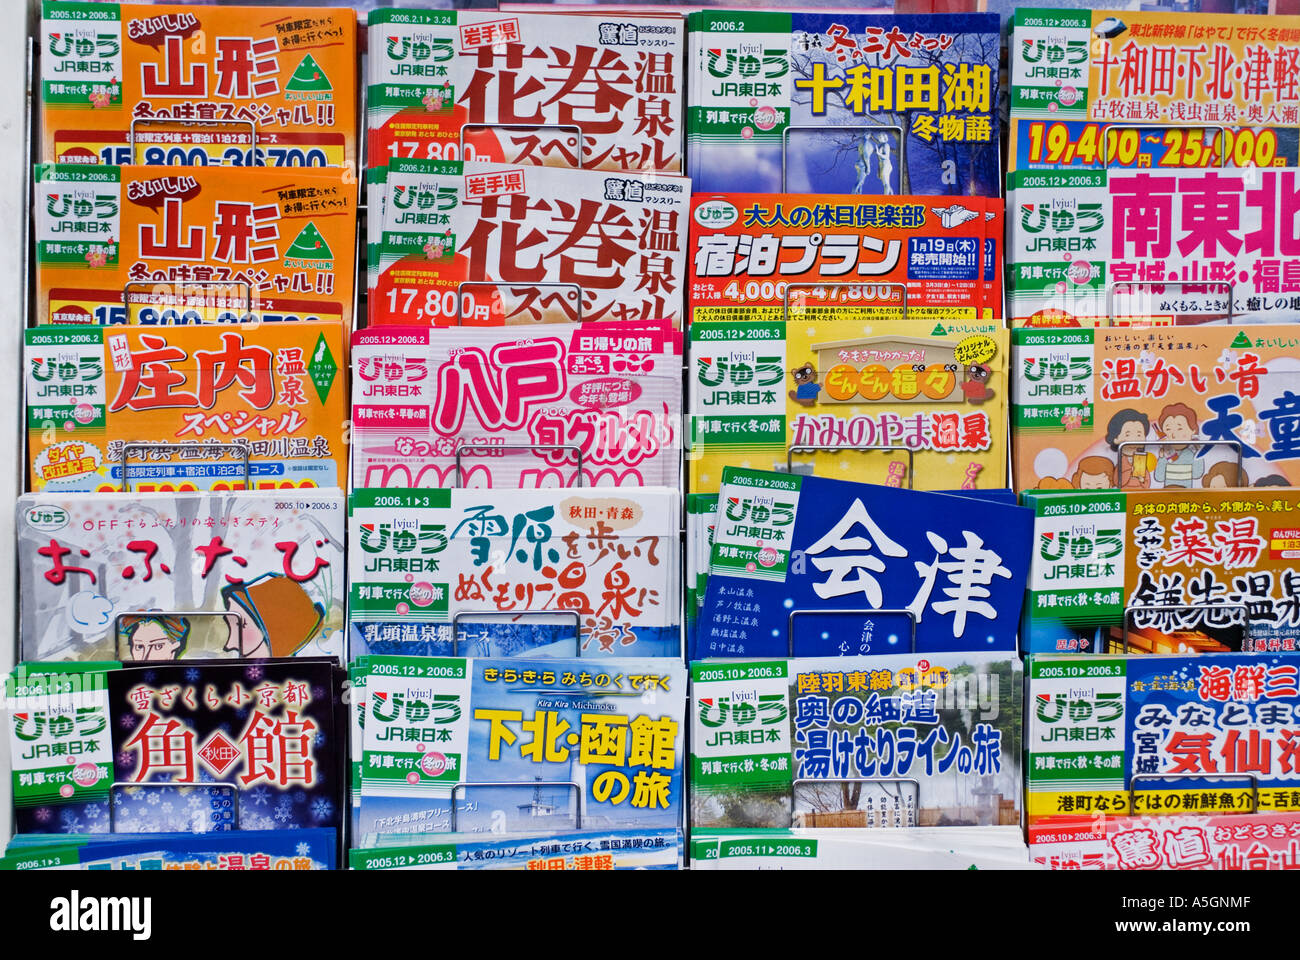 Selection of travel brochures on display at travel agency in Tokyo Japan - Stock Image